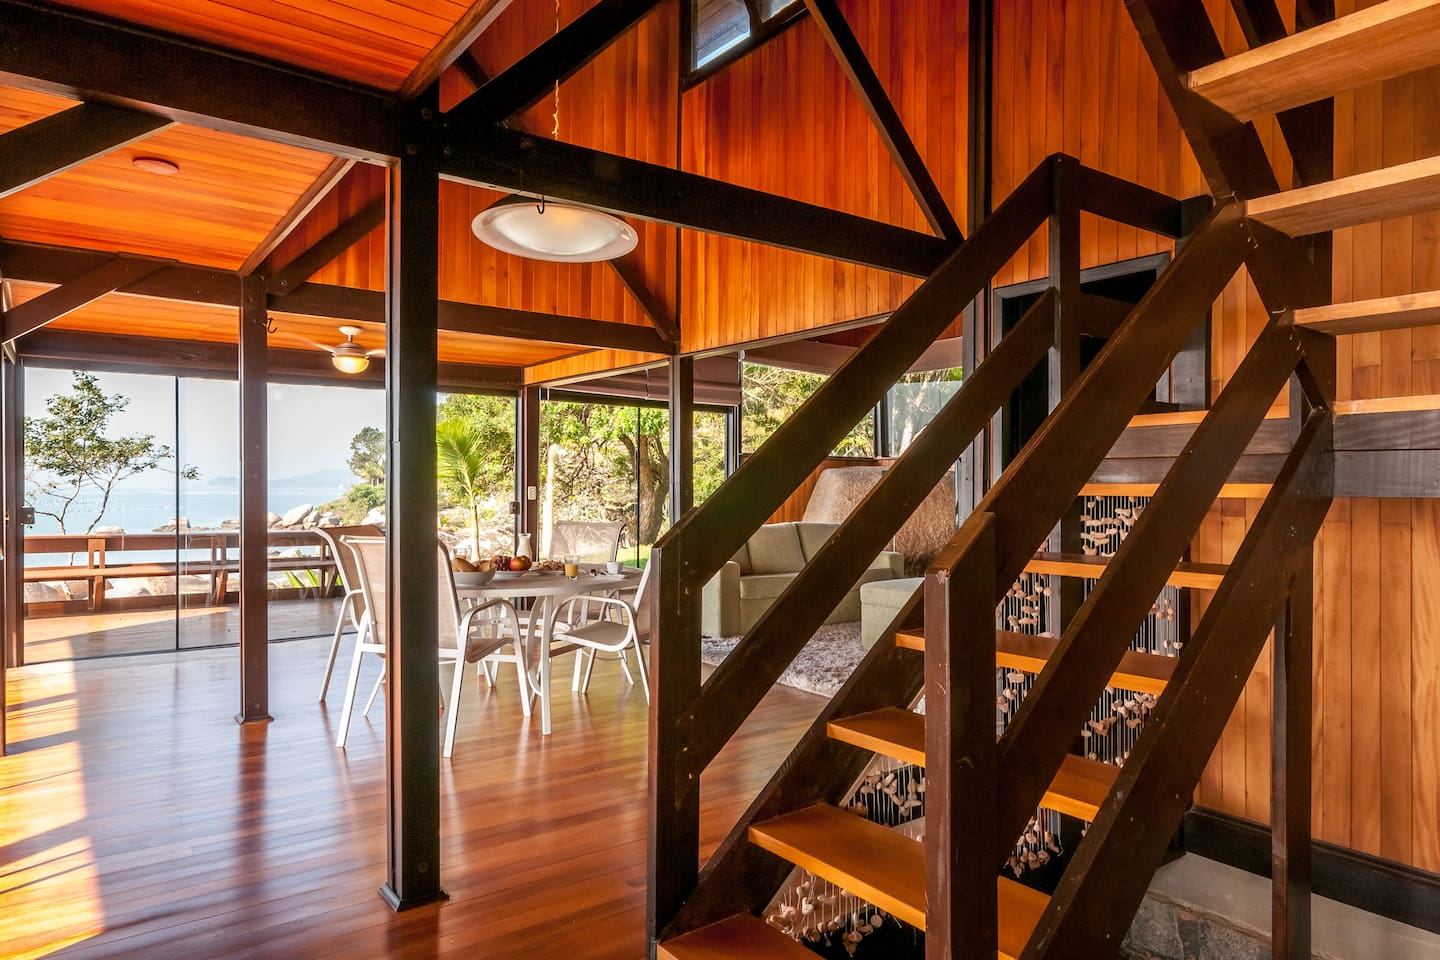 Living room of the beach house with full glass windows